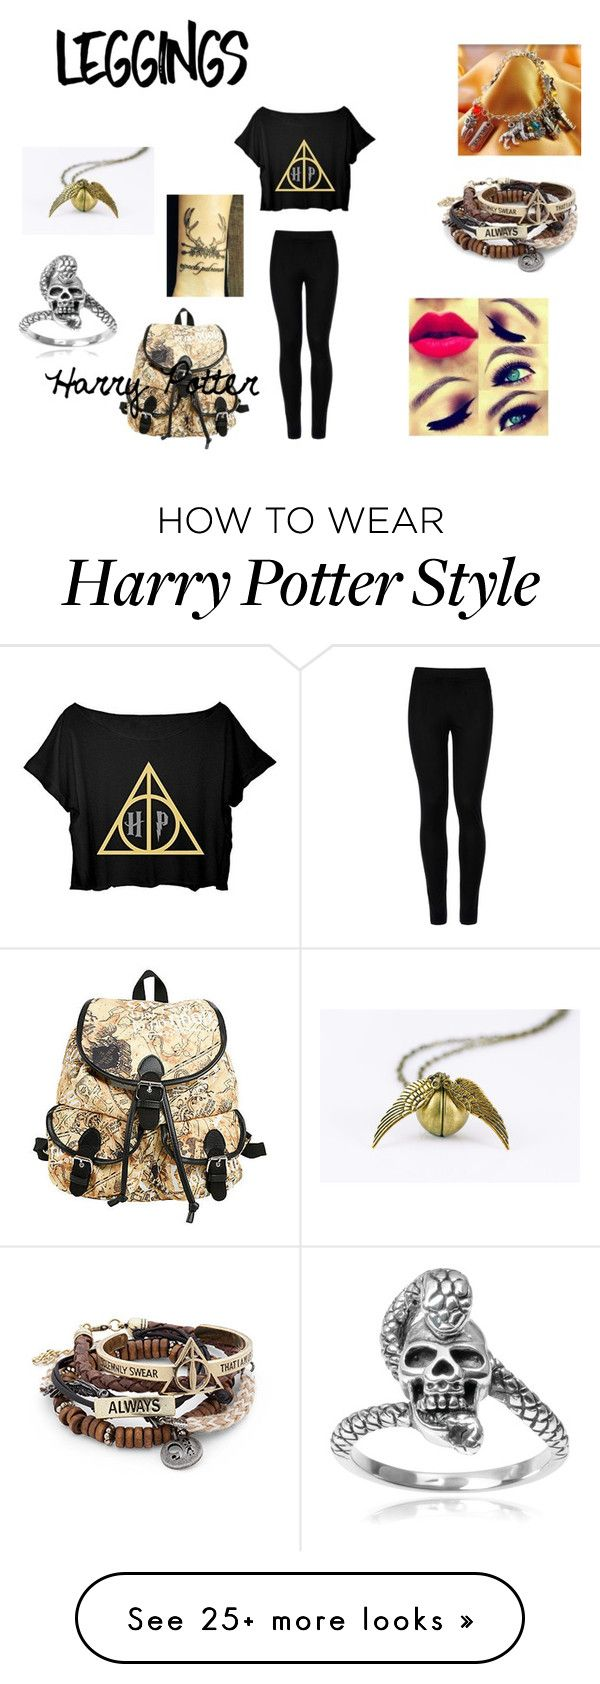 """""""Leggings"""" by unknownuser-315 on Polyvore featuring Tressa, Wolford, Leggings and WardrobeStaples"""